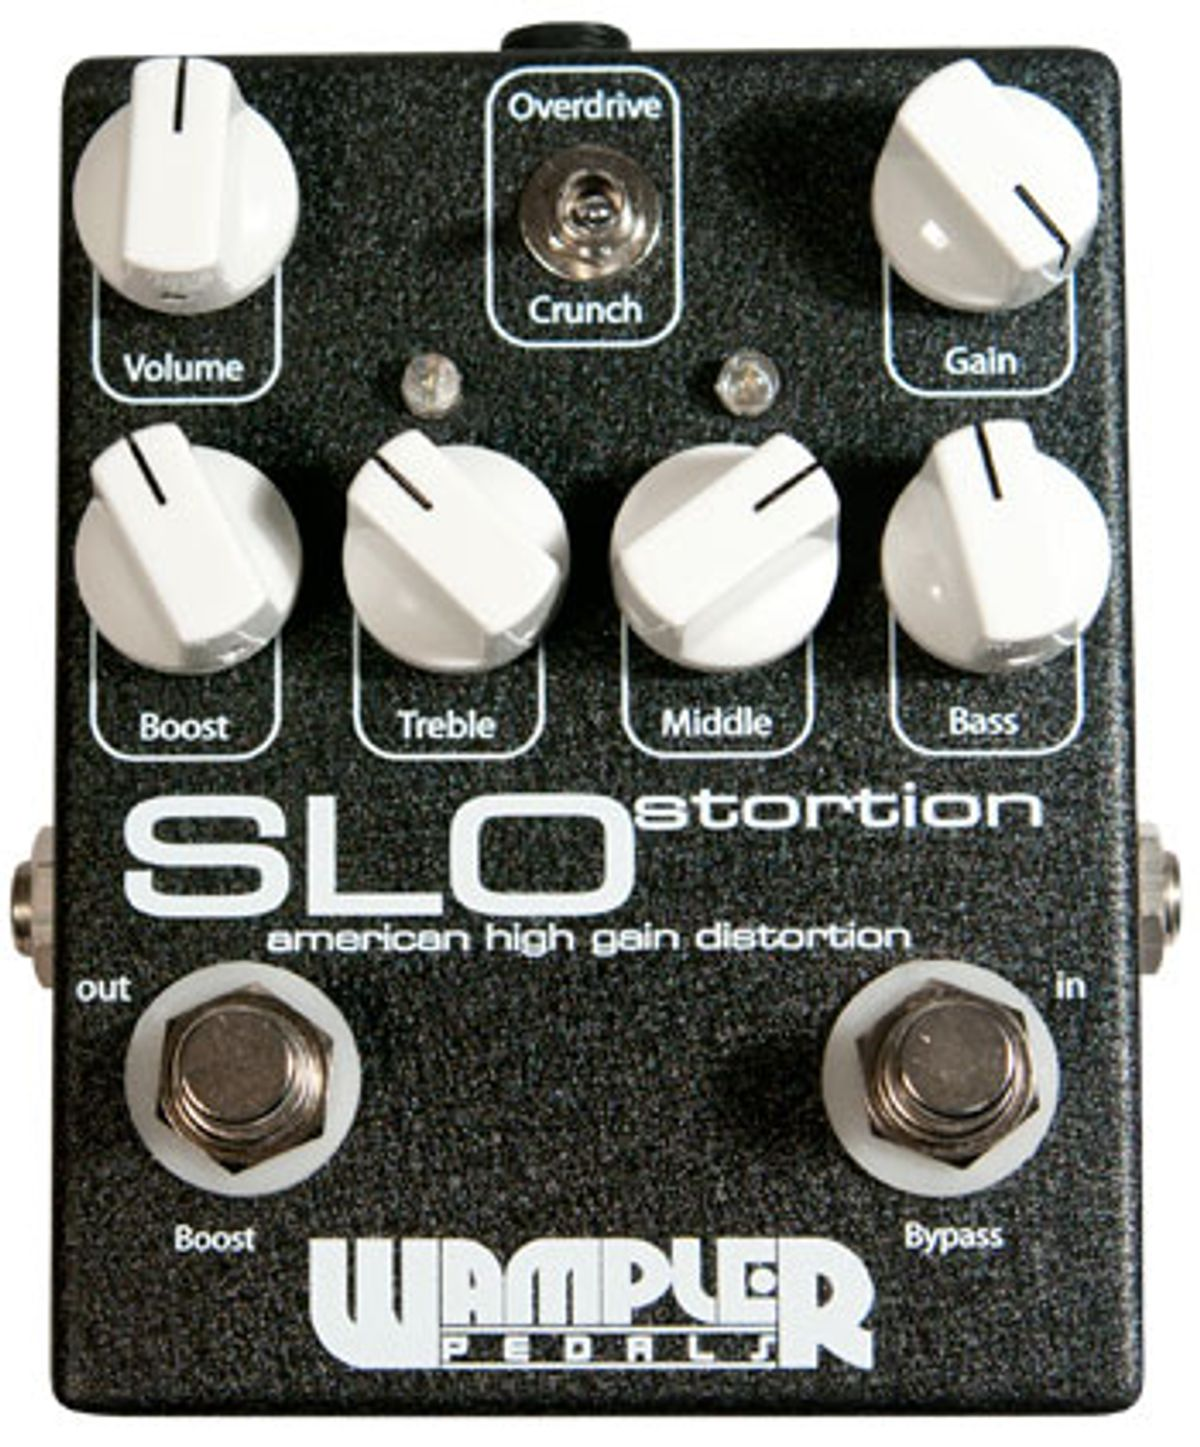 Wampler Pedals SLOstortion Pedal Review